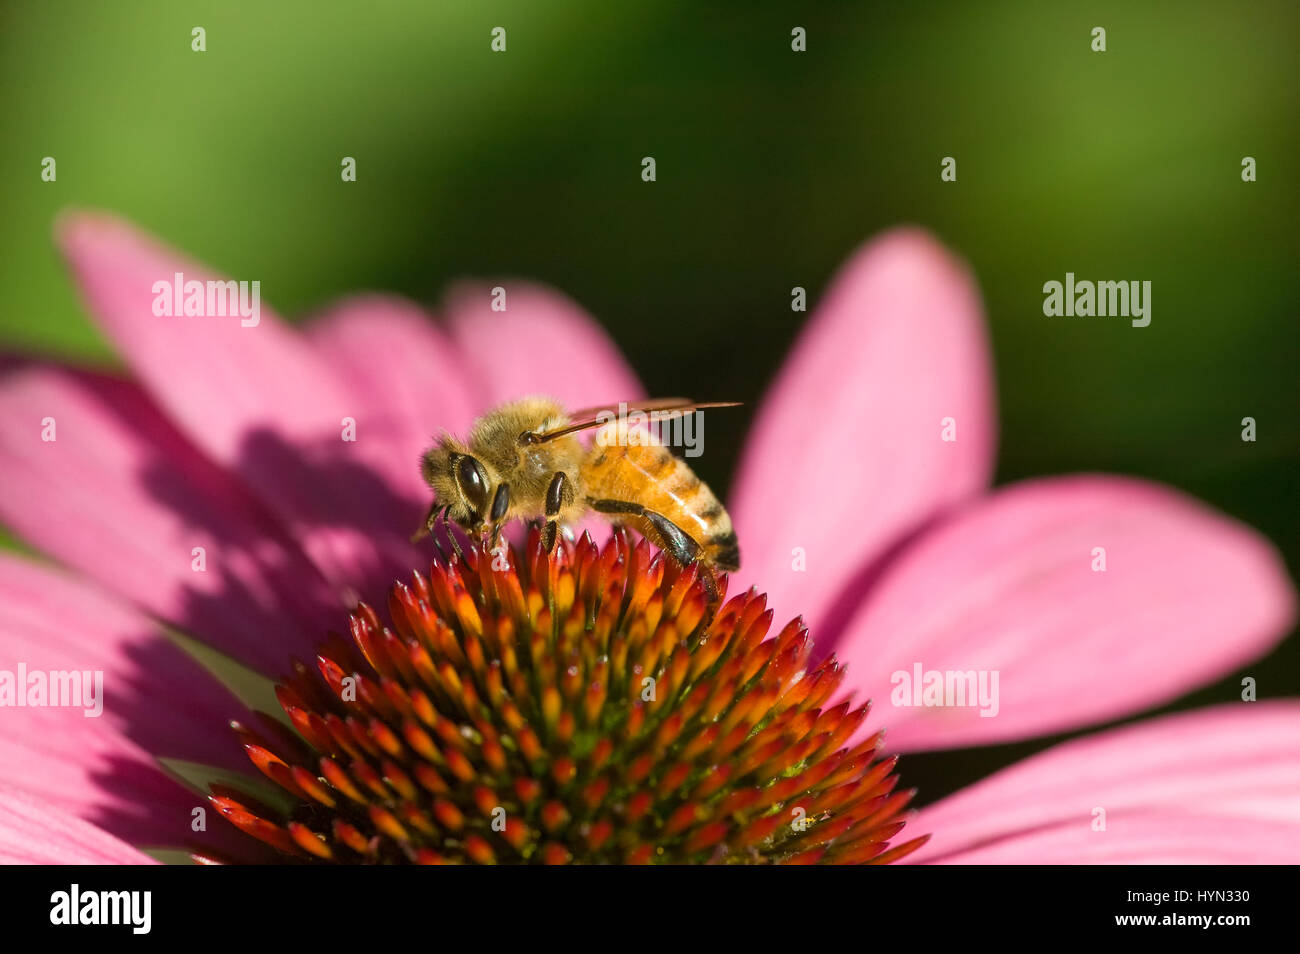 Coneflower Magnus (Echinacea purpurea) with a honey bee (Apis mellifera) taken in my backyard in Issaquah, WA.  - Stock Image